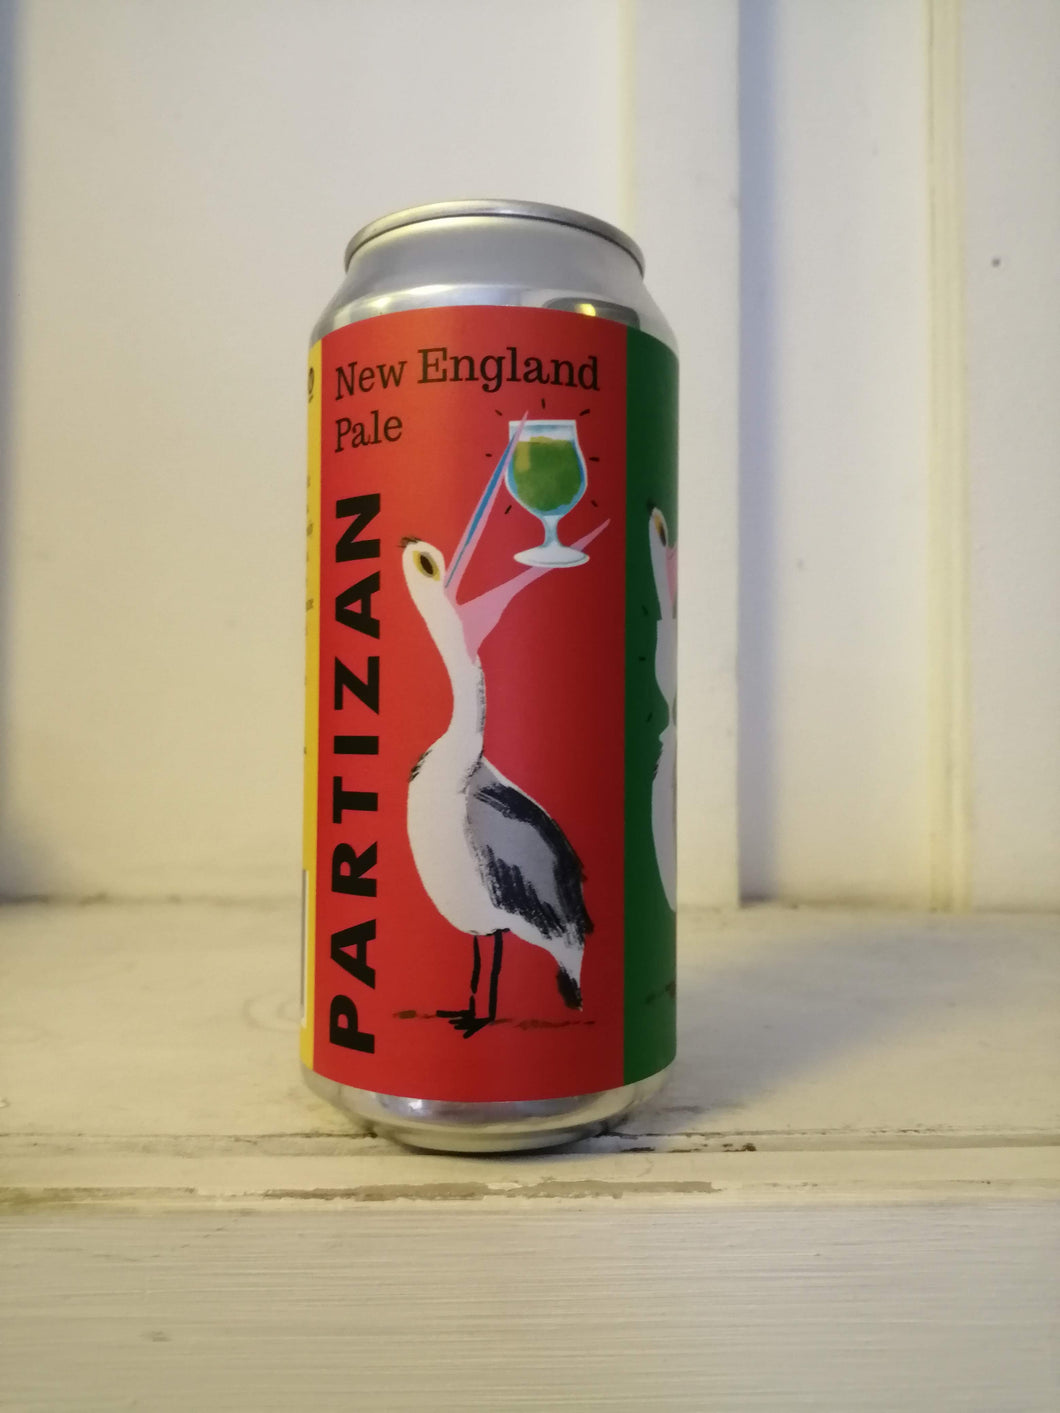 Partizan New England Pale 4.5% (440ml can)